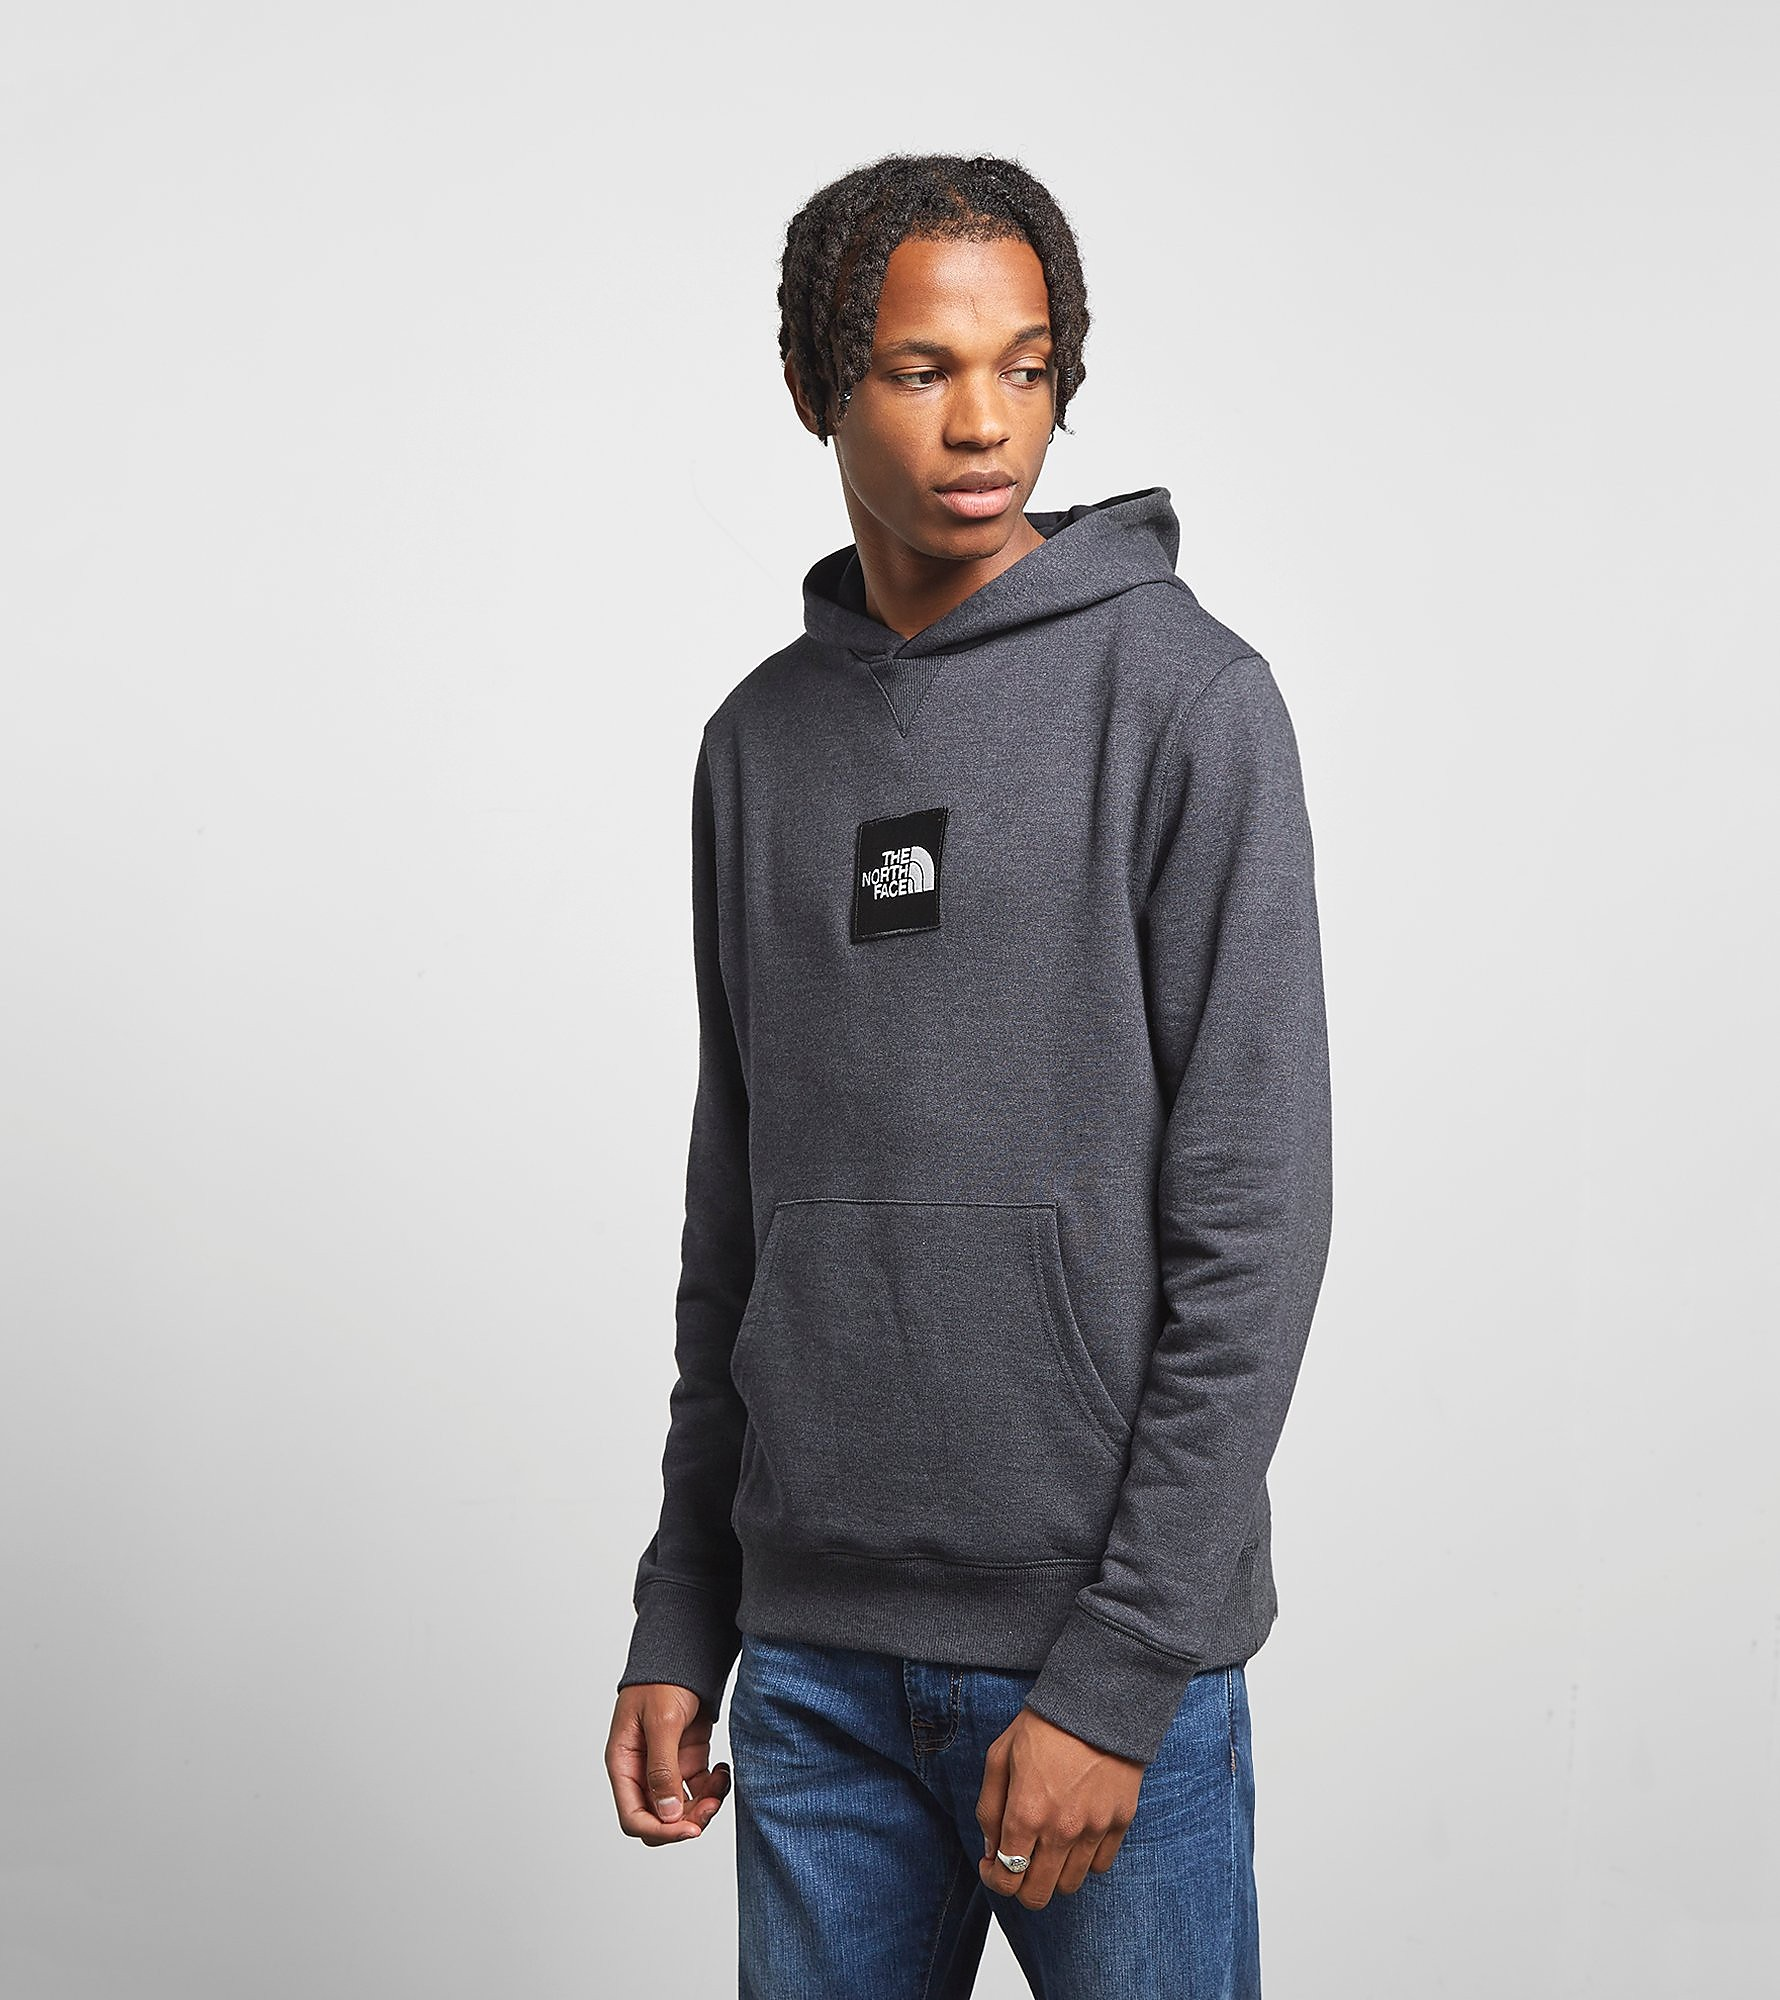 The North Face Black Label Hoody